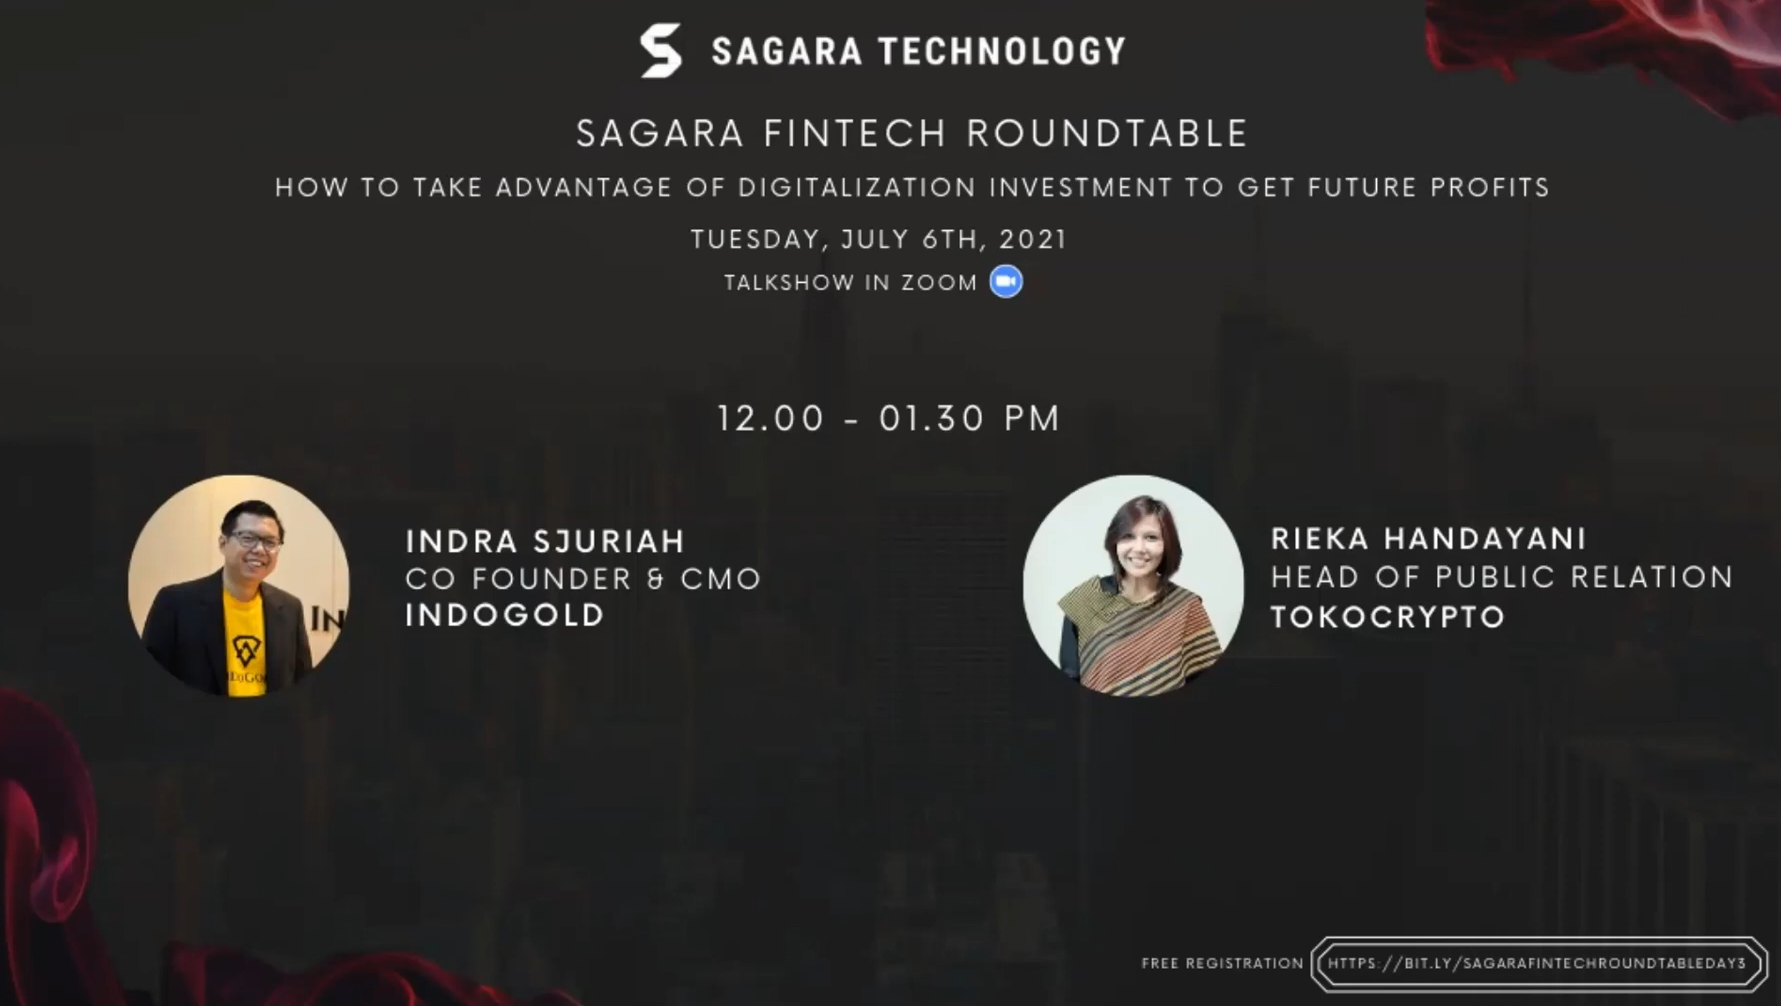 Sagara Fintech Roundtable - How to Take Advantage of Digitalization Investment to Get Future Profit